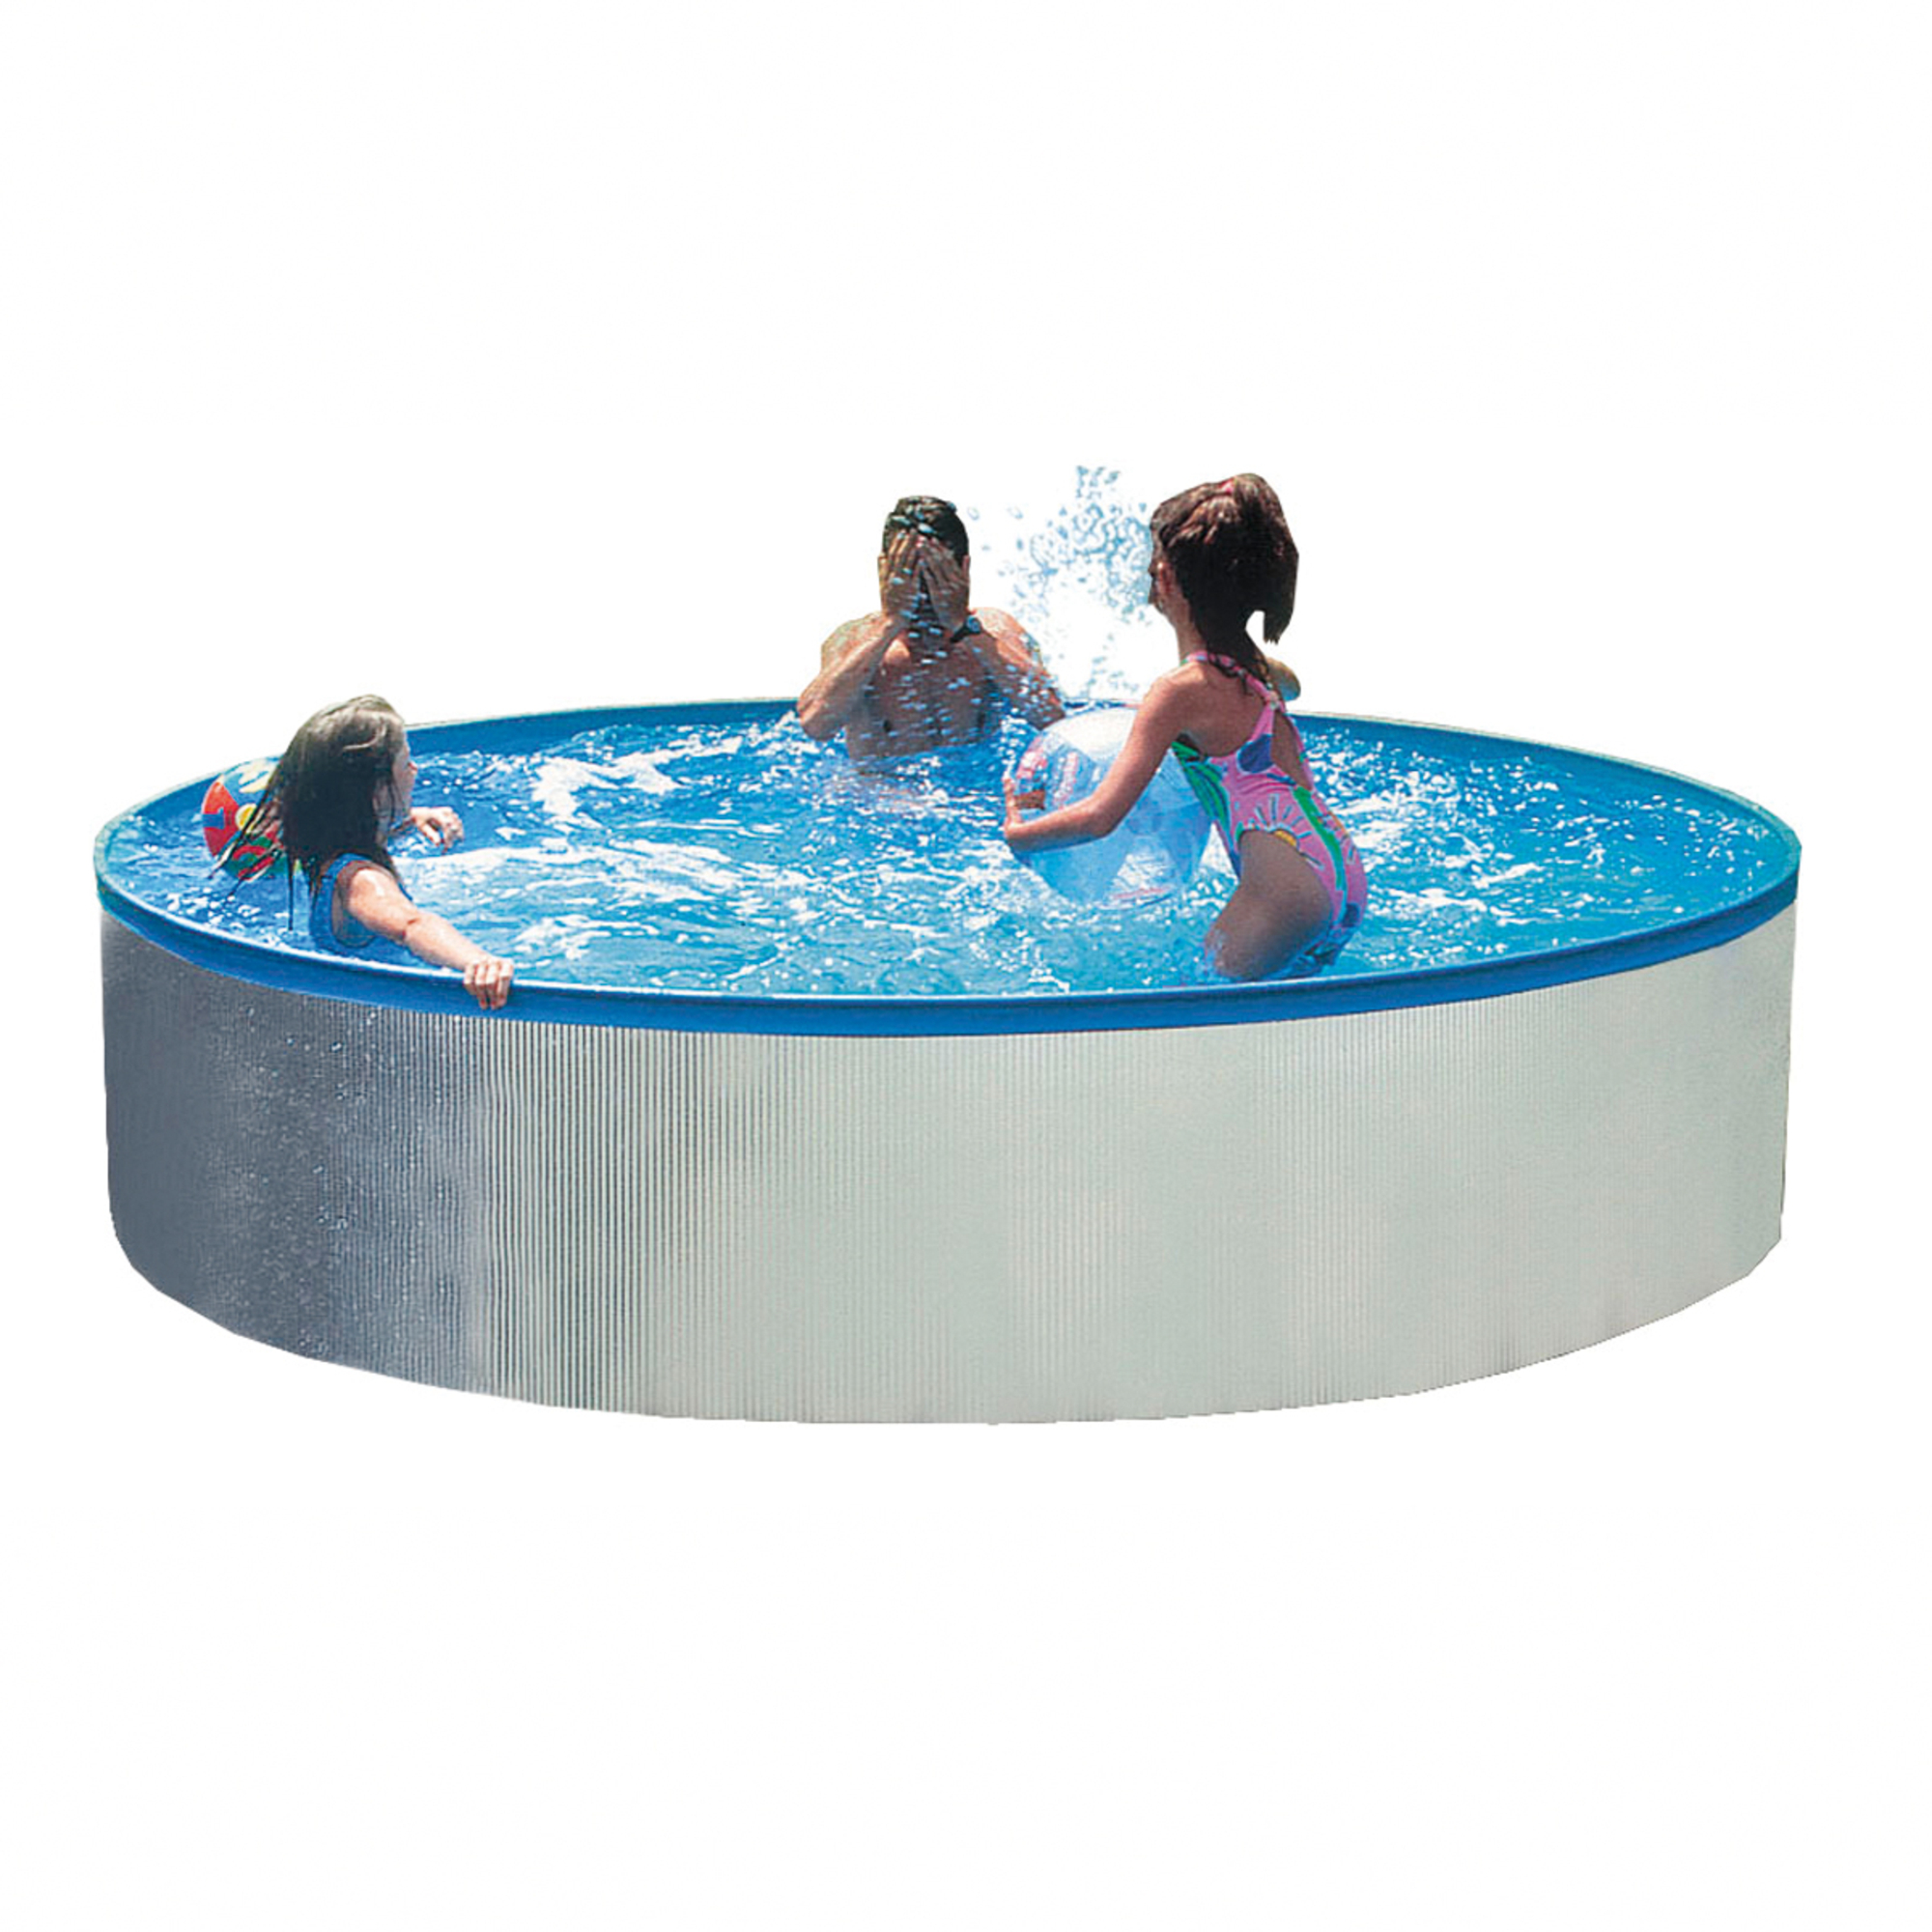 Piscine tubulaire en solde maison design for Piscine tubulaire rectangulaire en solde